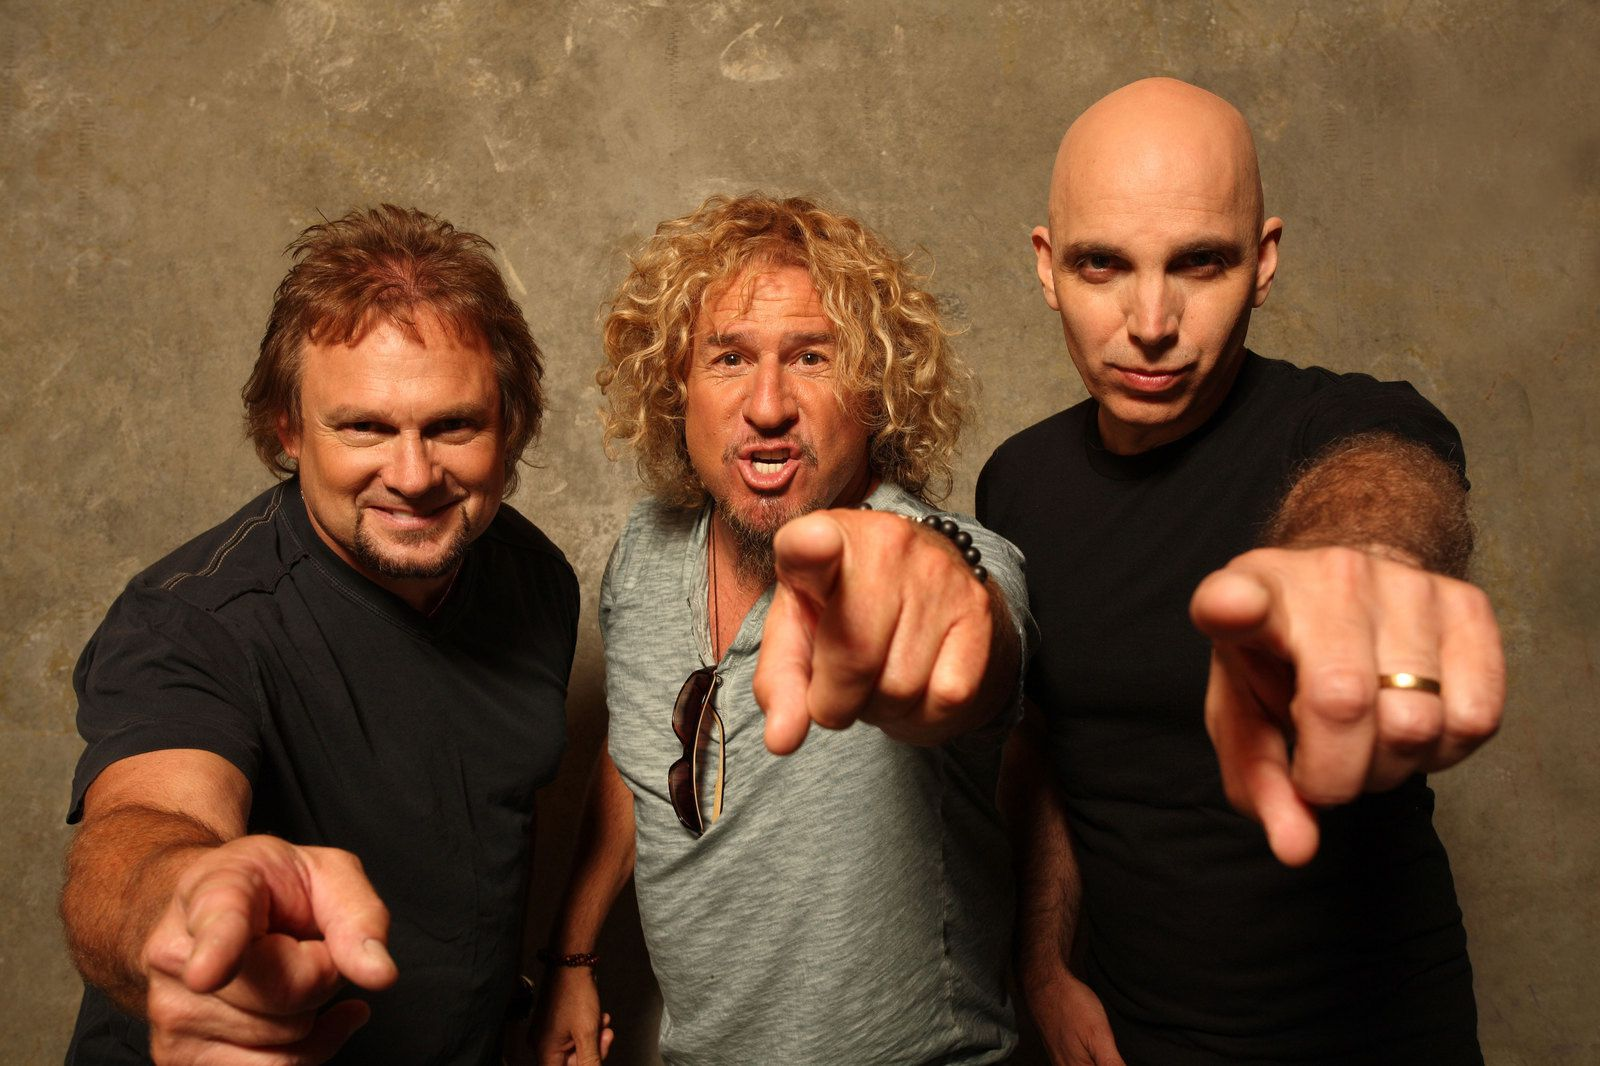 Sammy Hagar, Joe Satriani and Michael Anthony (Chickenfoot) - credit: Neil Zlozower